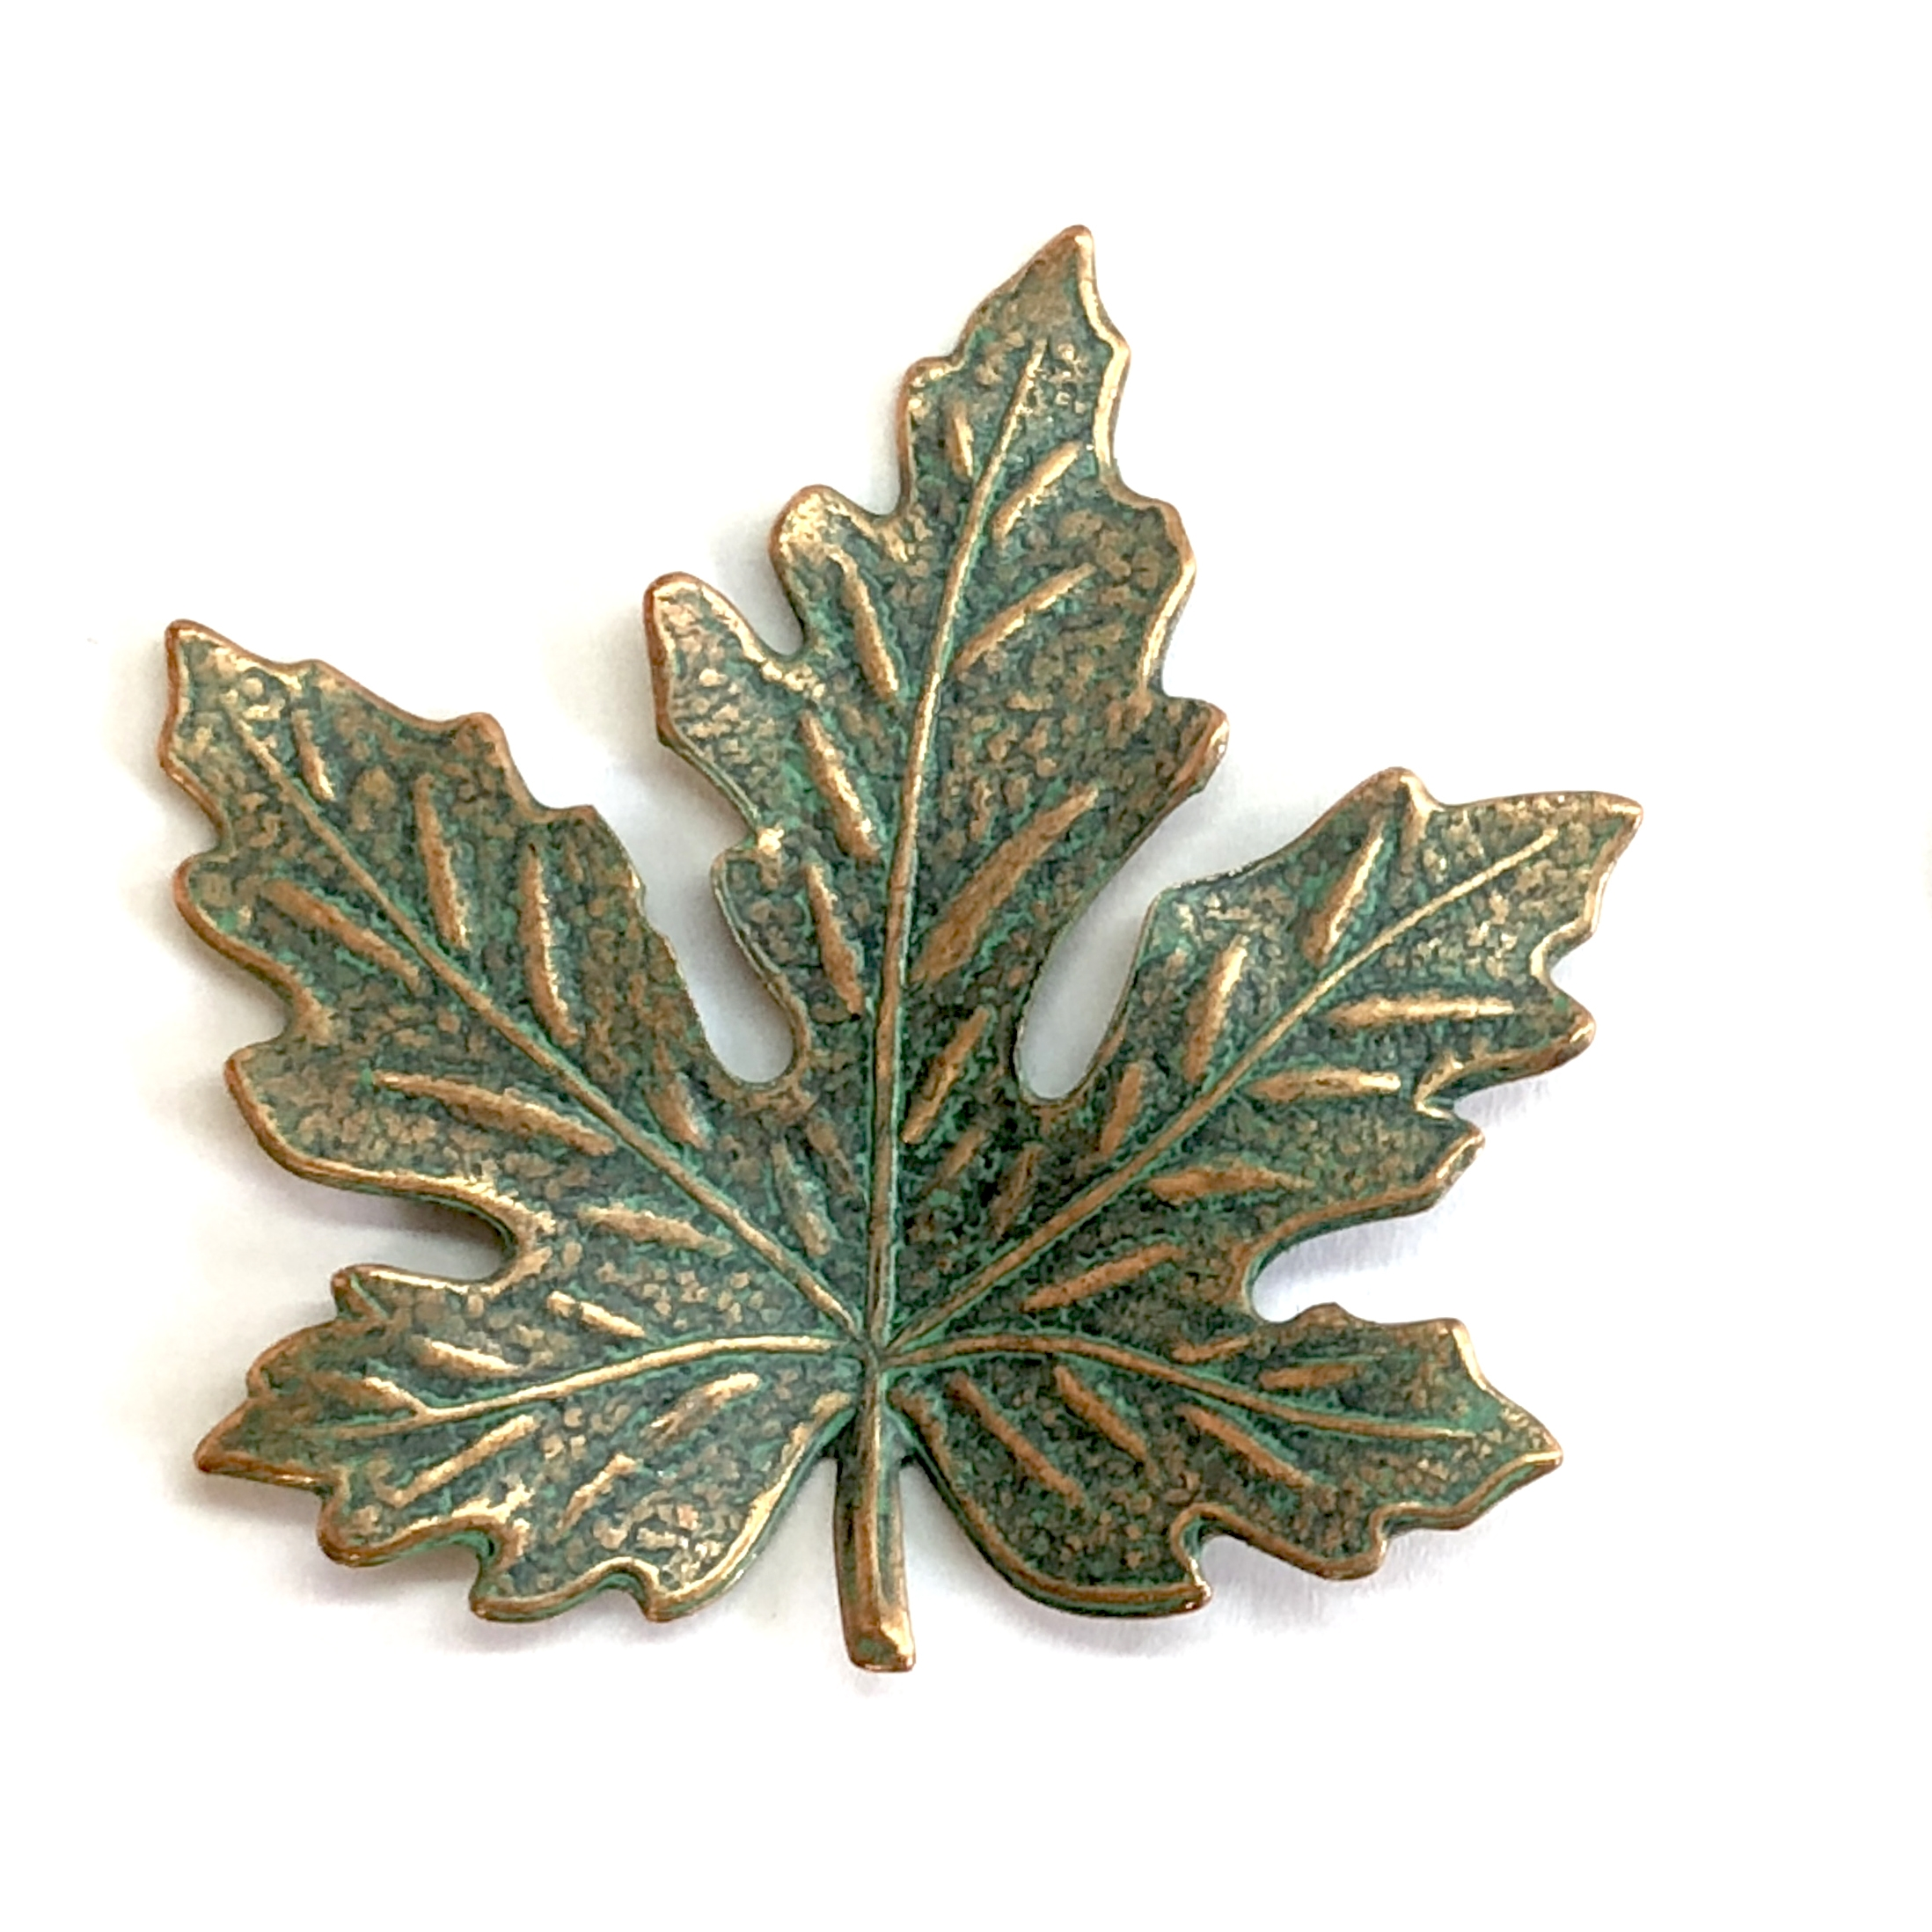 brass leaves, maple leaves, jewelry supplies, 41mm, 08174, B'sue Boutiques, US Made jewelry supplies, jewelry making supplies, nickel free jewelry supplies, vintage jewelry supplies, aqua copper patina, antique copper